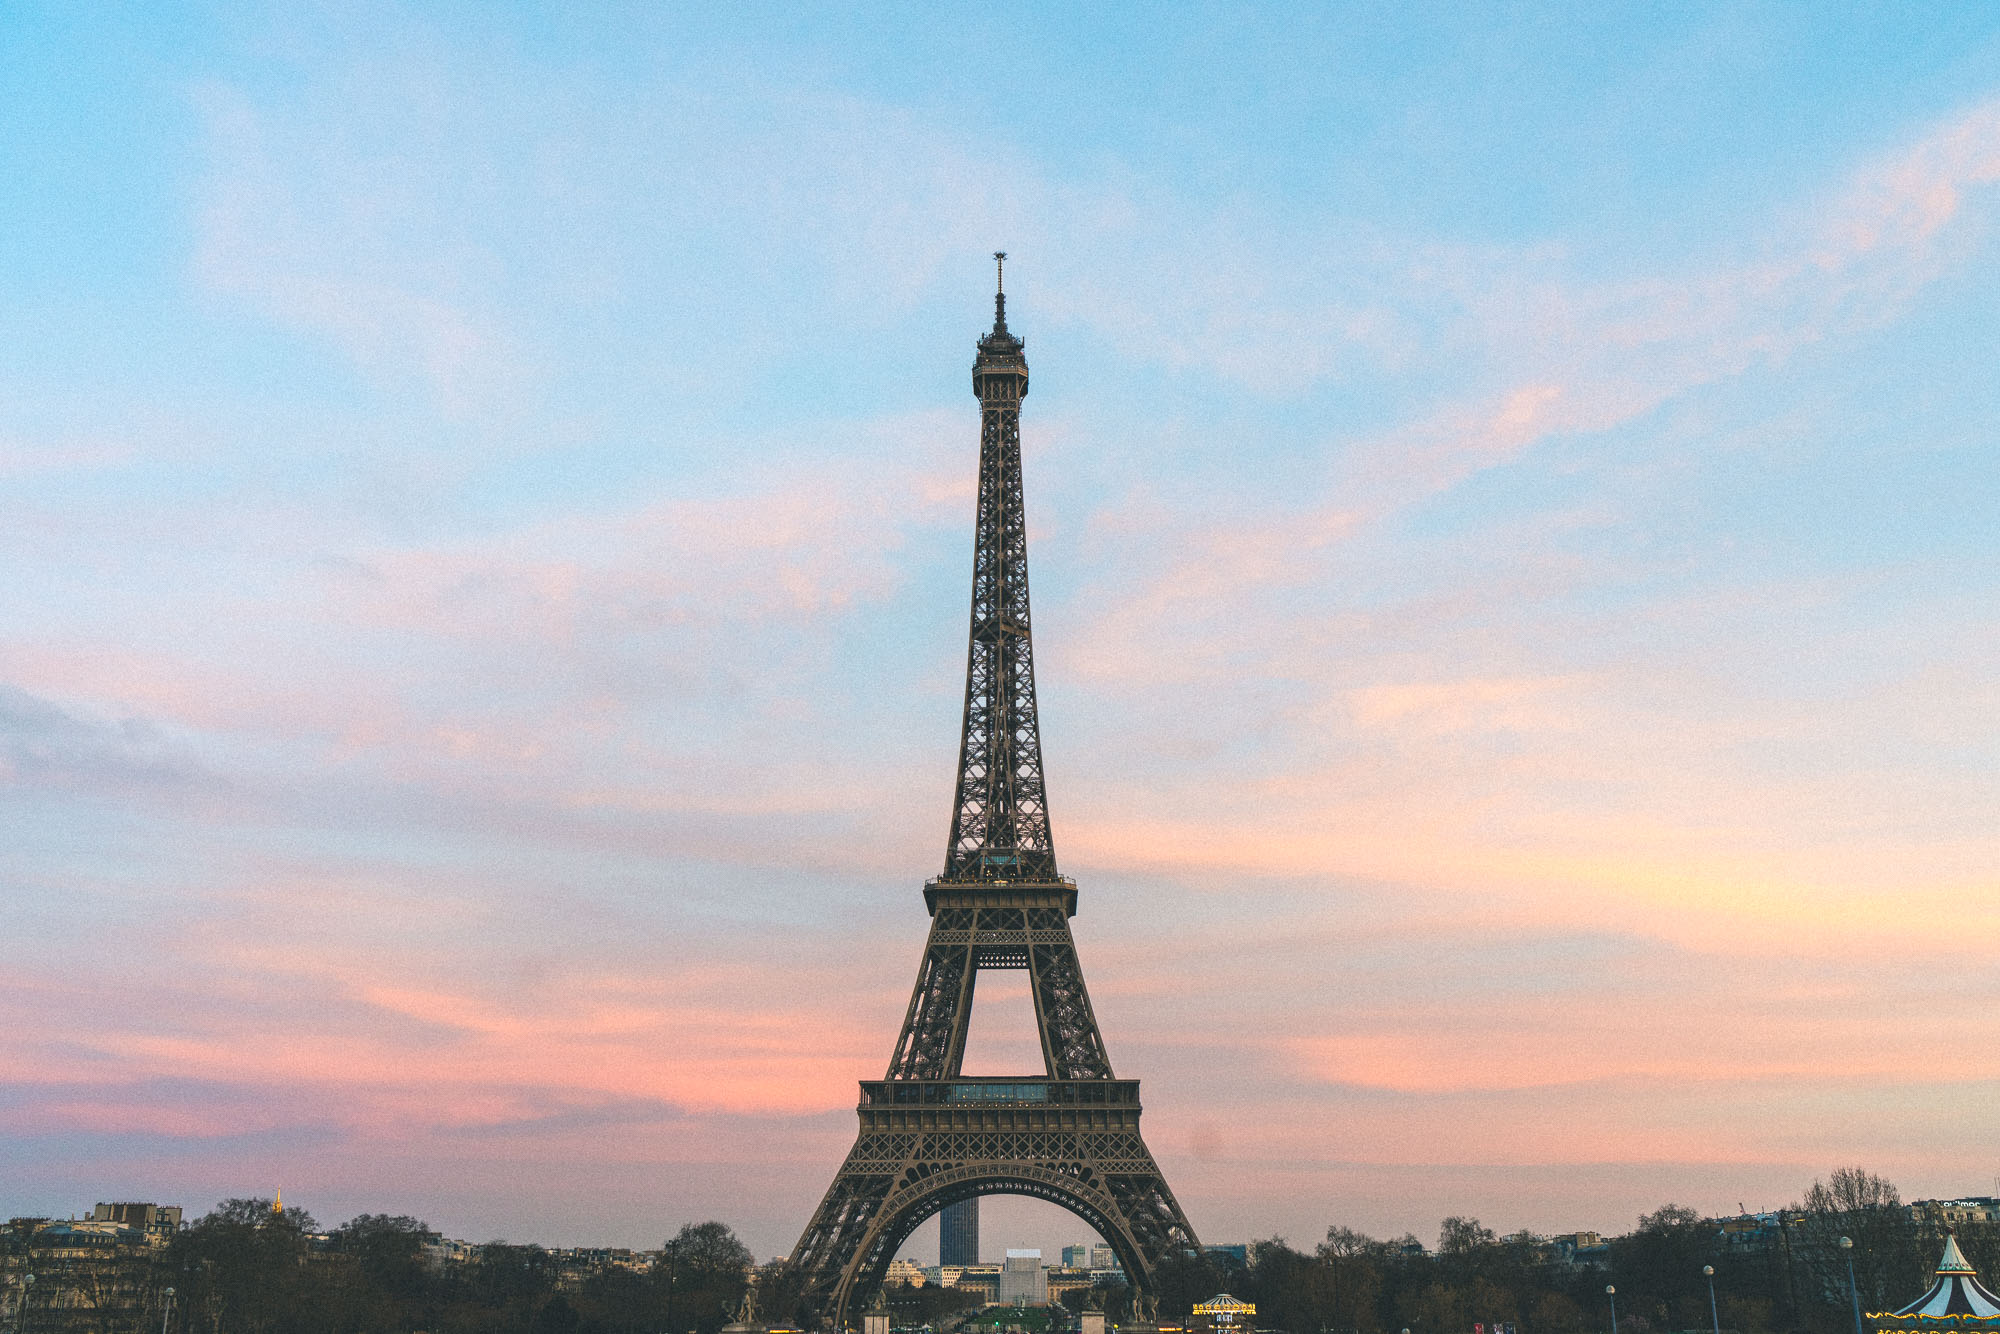 The eiffel tower at sunset - Complete Paris Travel Guide